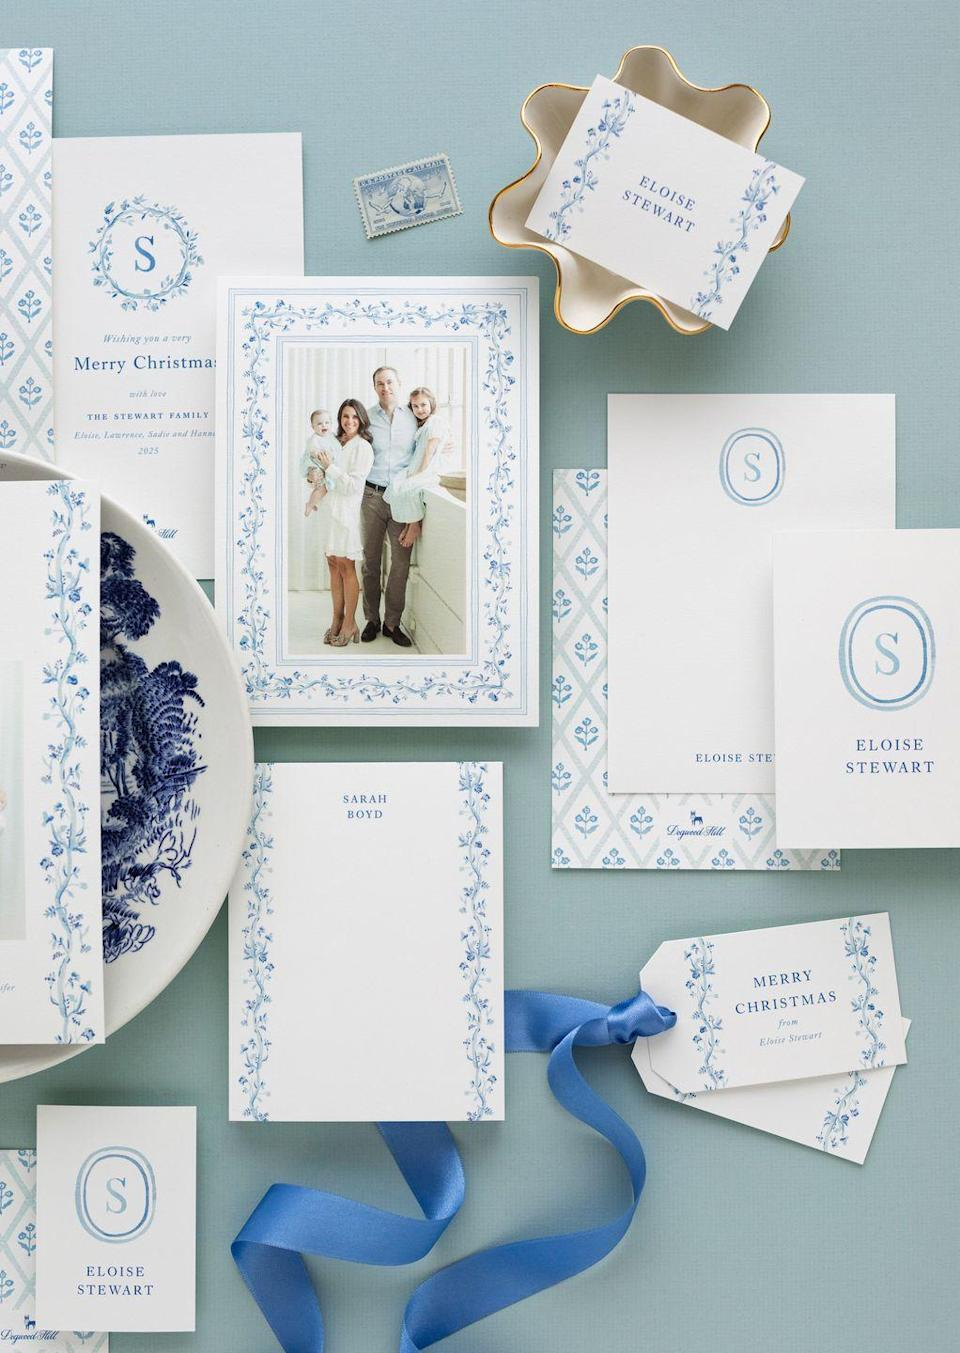 """<p>Okin recently teamed up with Gina Langford, a watercolor artist based in West Texas, to create a swoon-worthy stationery suite and other paper goods in Okin's signature color palette: blue and white. The New York-based interior designer hopes that this new collection will inspire a resurgence of letter-writing and card-collecting, two pastimes her mother passed down to her.</p><p>""""Growing up, my mom was very big on the importance of handwritten thank you notes, so stationery and handwritten notes have always held a special place in my heart,"""" says Okin. """"There's nothing better than receiving a note from a friend in the mail!""""</p><p>As a girl, Okin cherished her pale blue and ivory stationery sets on extra-thick cardstock from Crane & Co. with a matching tissue envelope liner. She says finding a set you love is an important step towards becoming a regular letter writer because it makes the experience more exciting and beautiful. She also recommends a quality writing utensil that highlights your impeccable penmanship.</p><p>""""Beautiful, personalized stationery is truly a lost art; physical documentation of our correspondence is so rare these days, and it's a special practice to keep alive,"""" she says. """"Seeing a note in a loved one's hand writing is such a meaningful memento–I save every written card from my mom and grandmother. If we lose written correspondence, we lose the personal touch that comes with it.""""</p><p>Shop the <a href=""""https://www.dogwood-hill.com/collections/ariel-okin-collection"""" rel=""""nofollow noopener"""" target=""""_blank"""" data-ylk=""""slk:Ariel Okin Collection"""" class=""""link rapid-noclick-resp"""">Ariel Okin Collection</a> now to stock up on botanical-inspired stationery, invitations, menus, and more ahead of the holidays. </p>"""